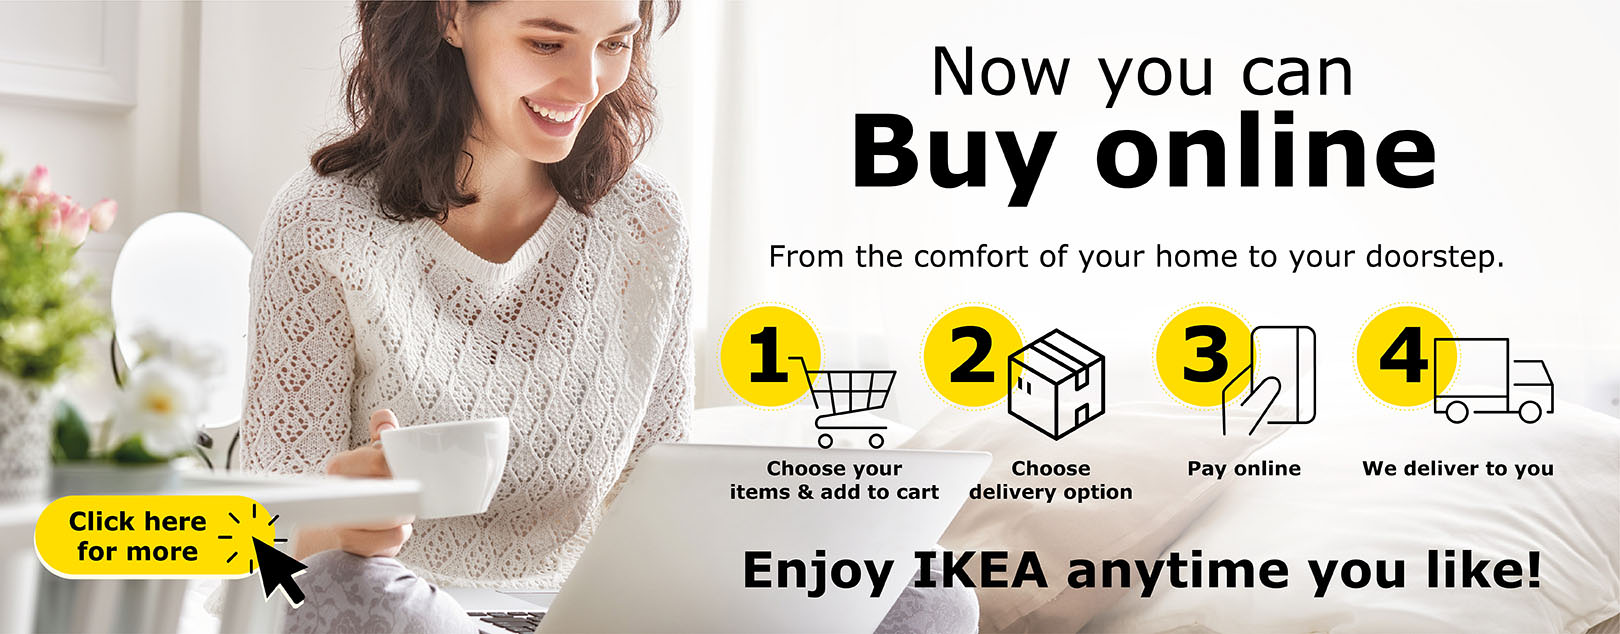 IKEA ecommerce is available!